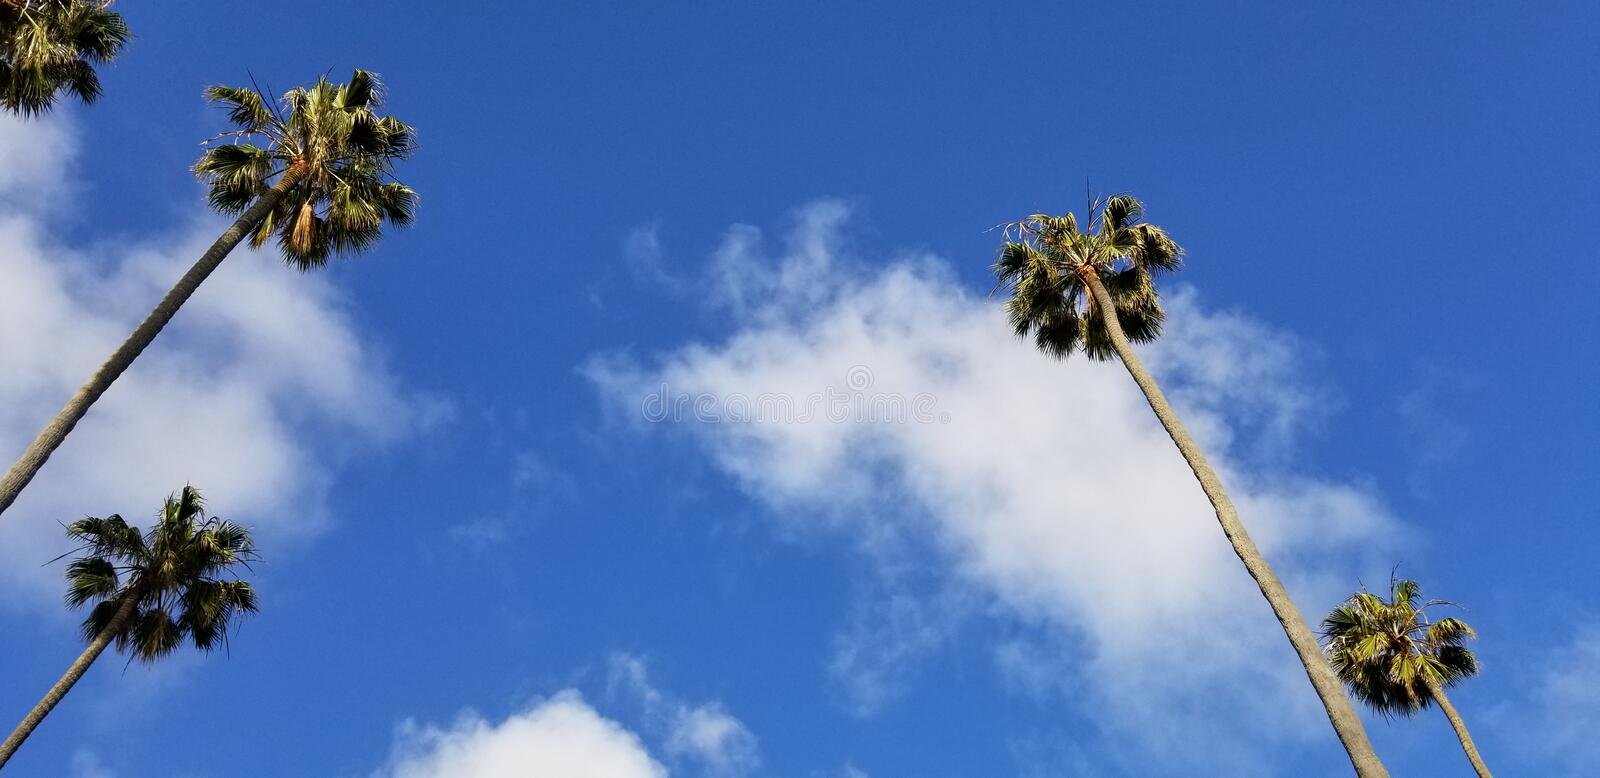 Tall palms against blue sky at Southern California beach town. A row of stately king palms planted in a row along the street in a Southern California beach town royalty free stock photography